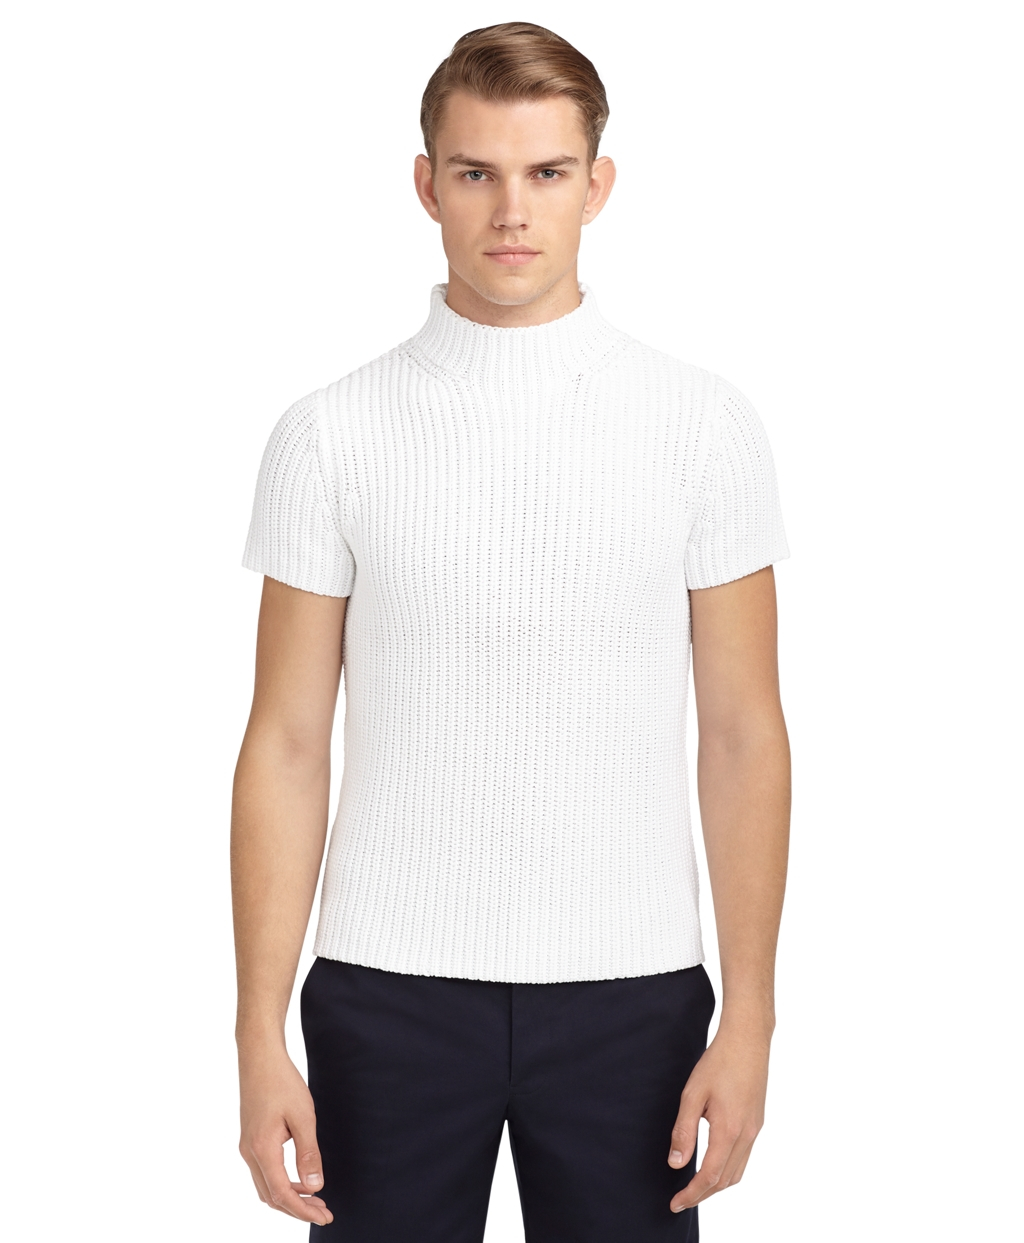 Try our Men's Short Sleeve Super-T Mock Turtleneck at Lands' End. Everything we sell is Guaranteed. Period.® Since